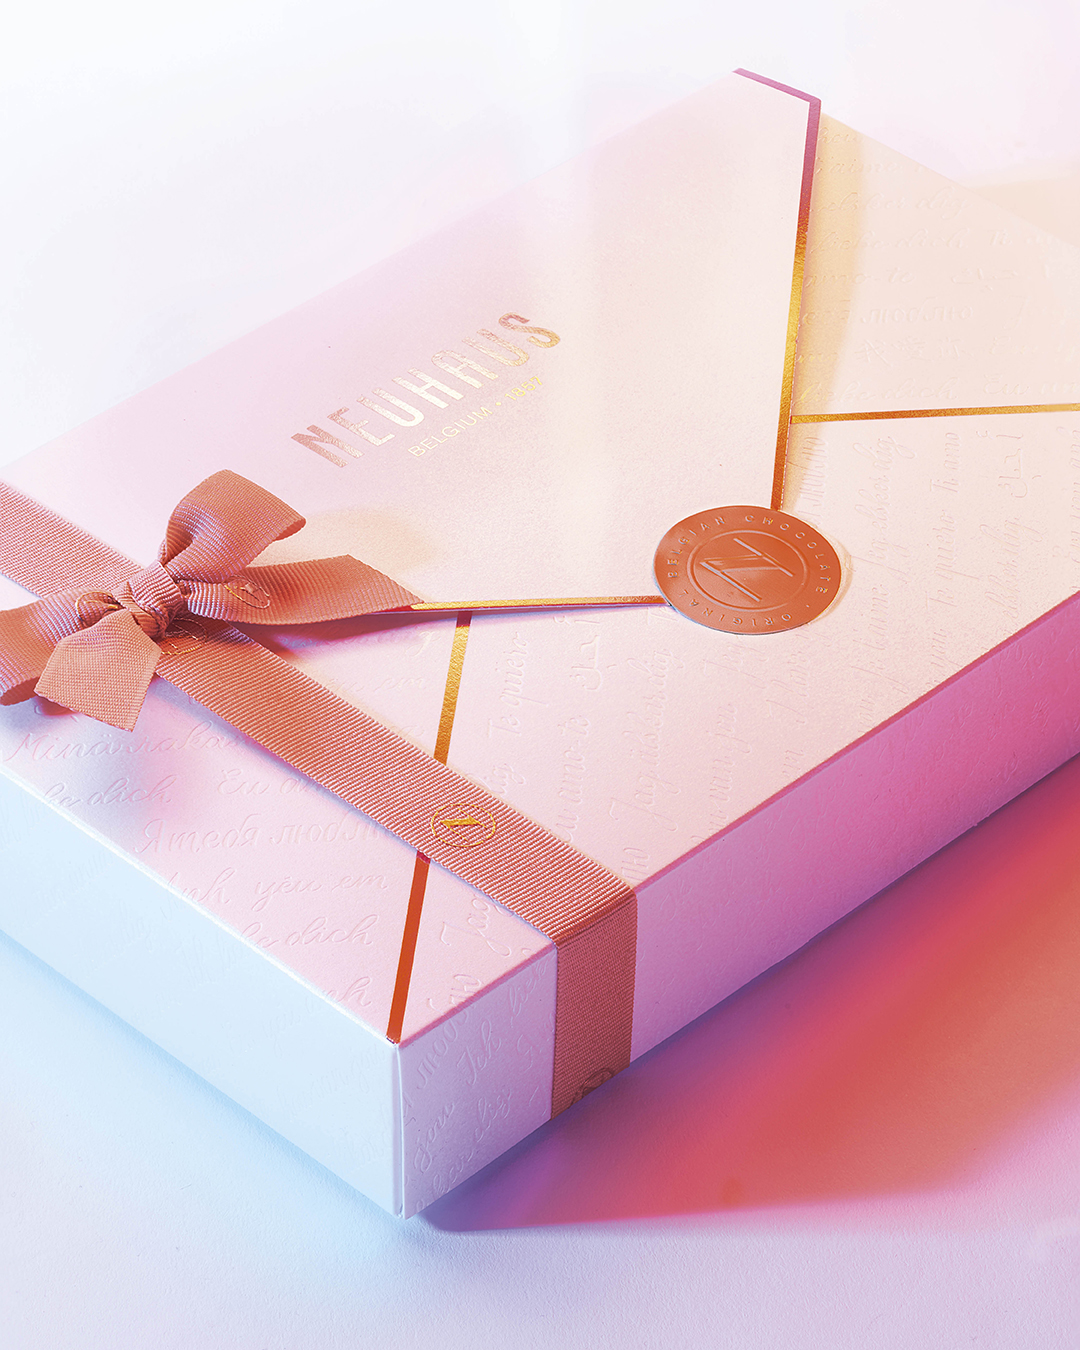 Article: How to Capture Love in a Packaging Design By WeWantMore